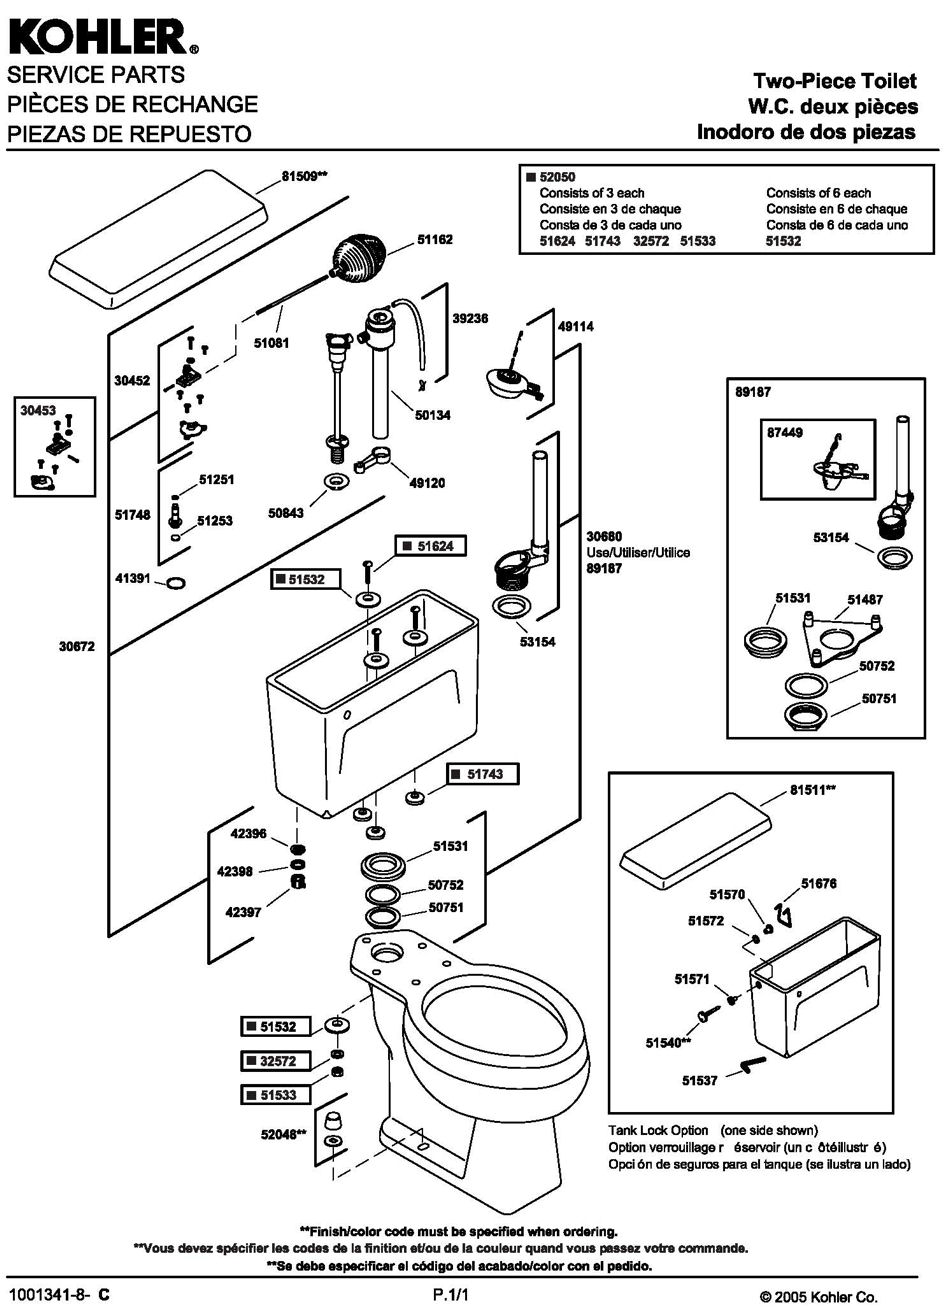 ToiletPro.com Parts Breakdown For Kohler 4520 Toilet